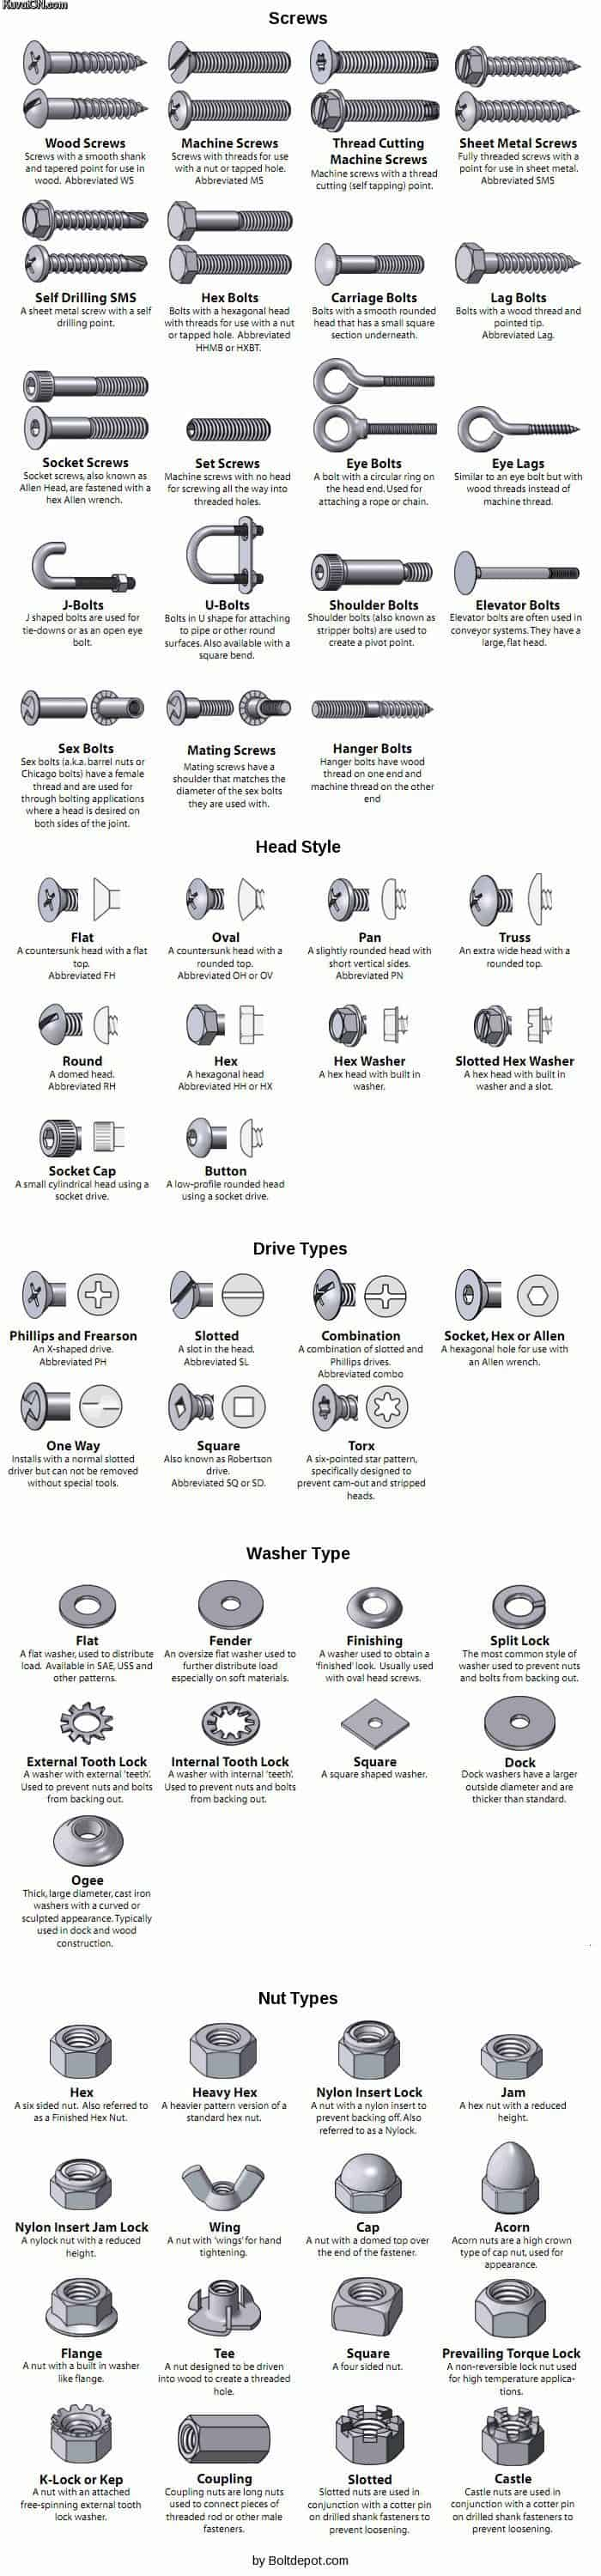 Types of Screws and Bolts Guide Infographic